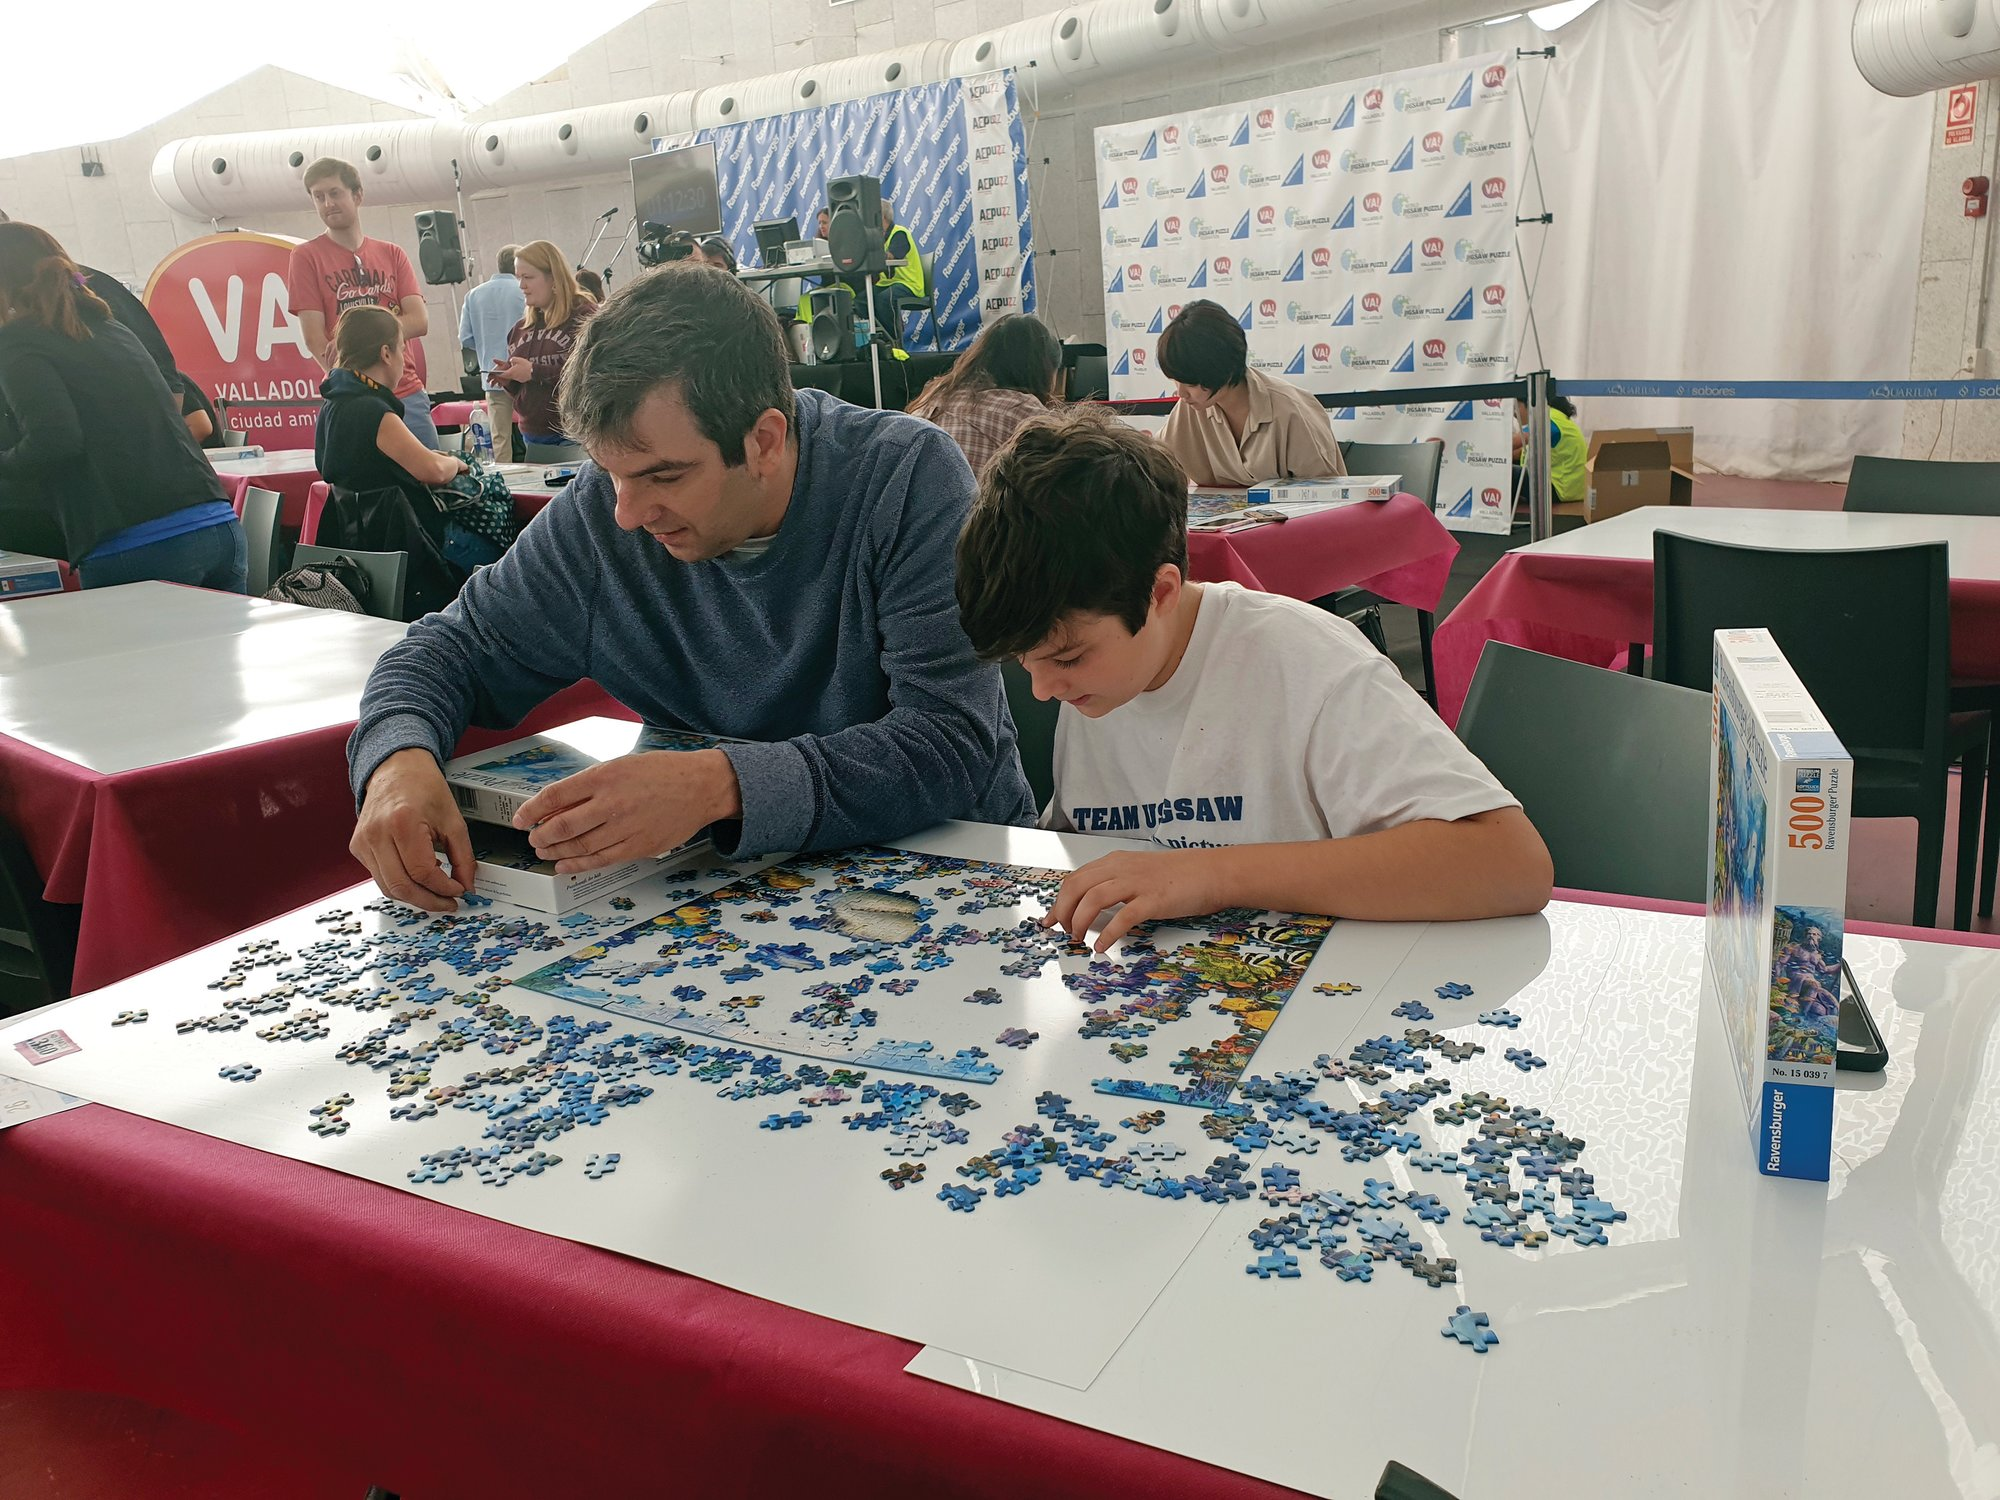 Julie Jacobs via AP   A.J. Jacobs and his 13-year-old son, Zane, are seen during an event at the 2019 World Jigsaw Puzzle Championship in Spain. There were 40 countries represented at this competition.